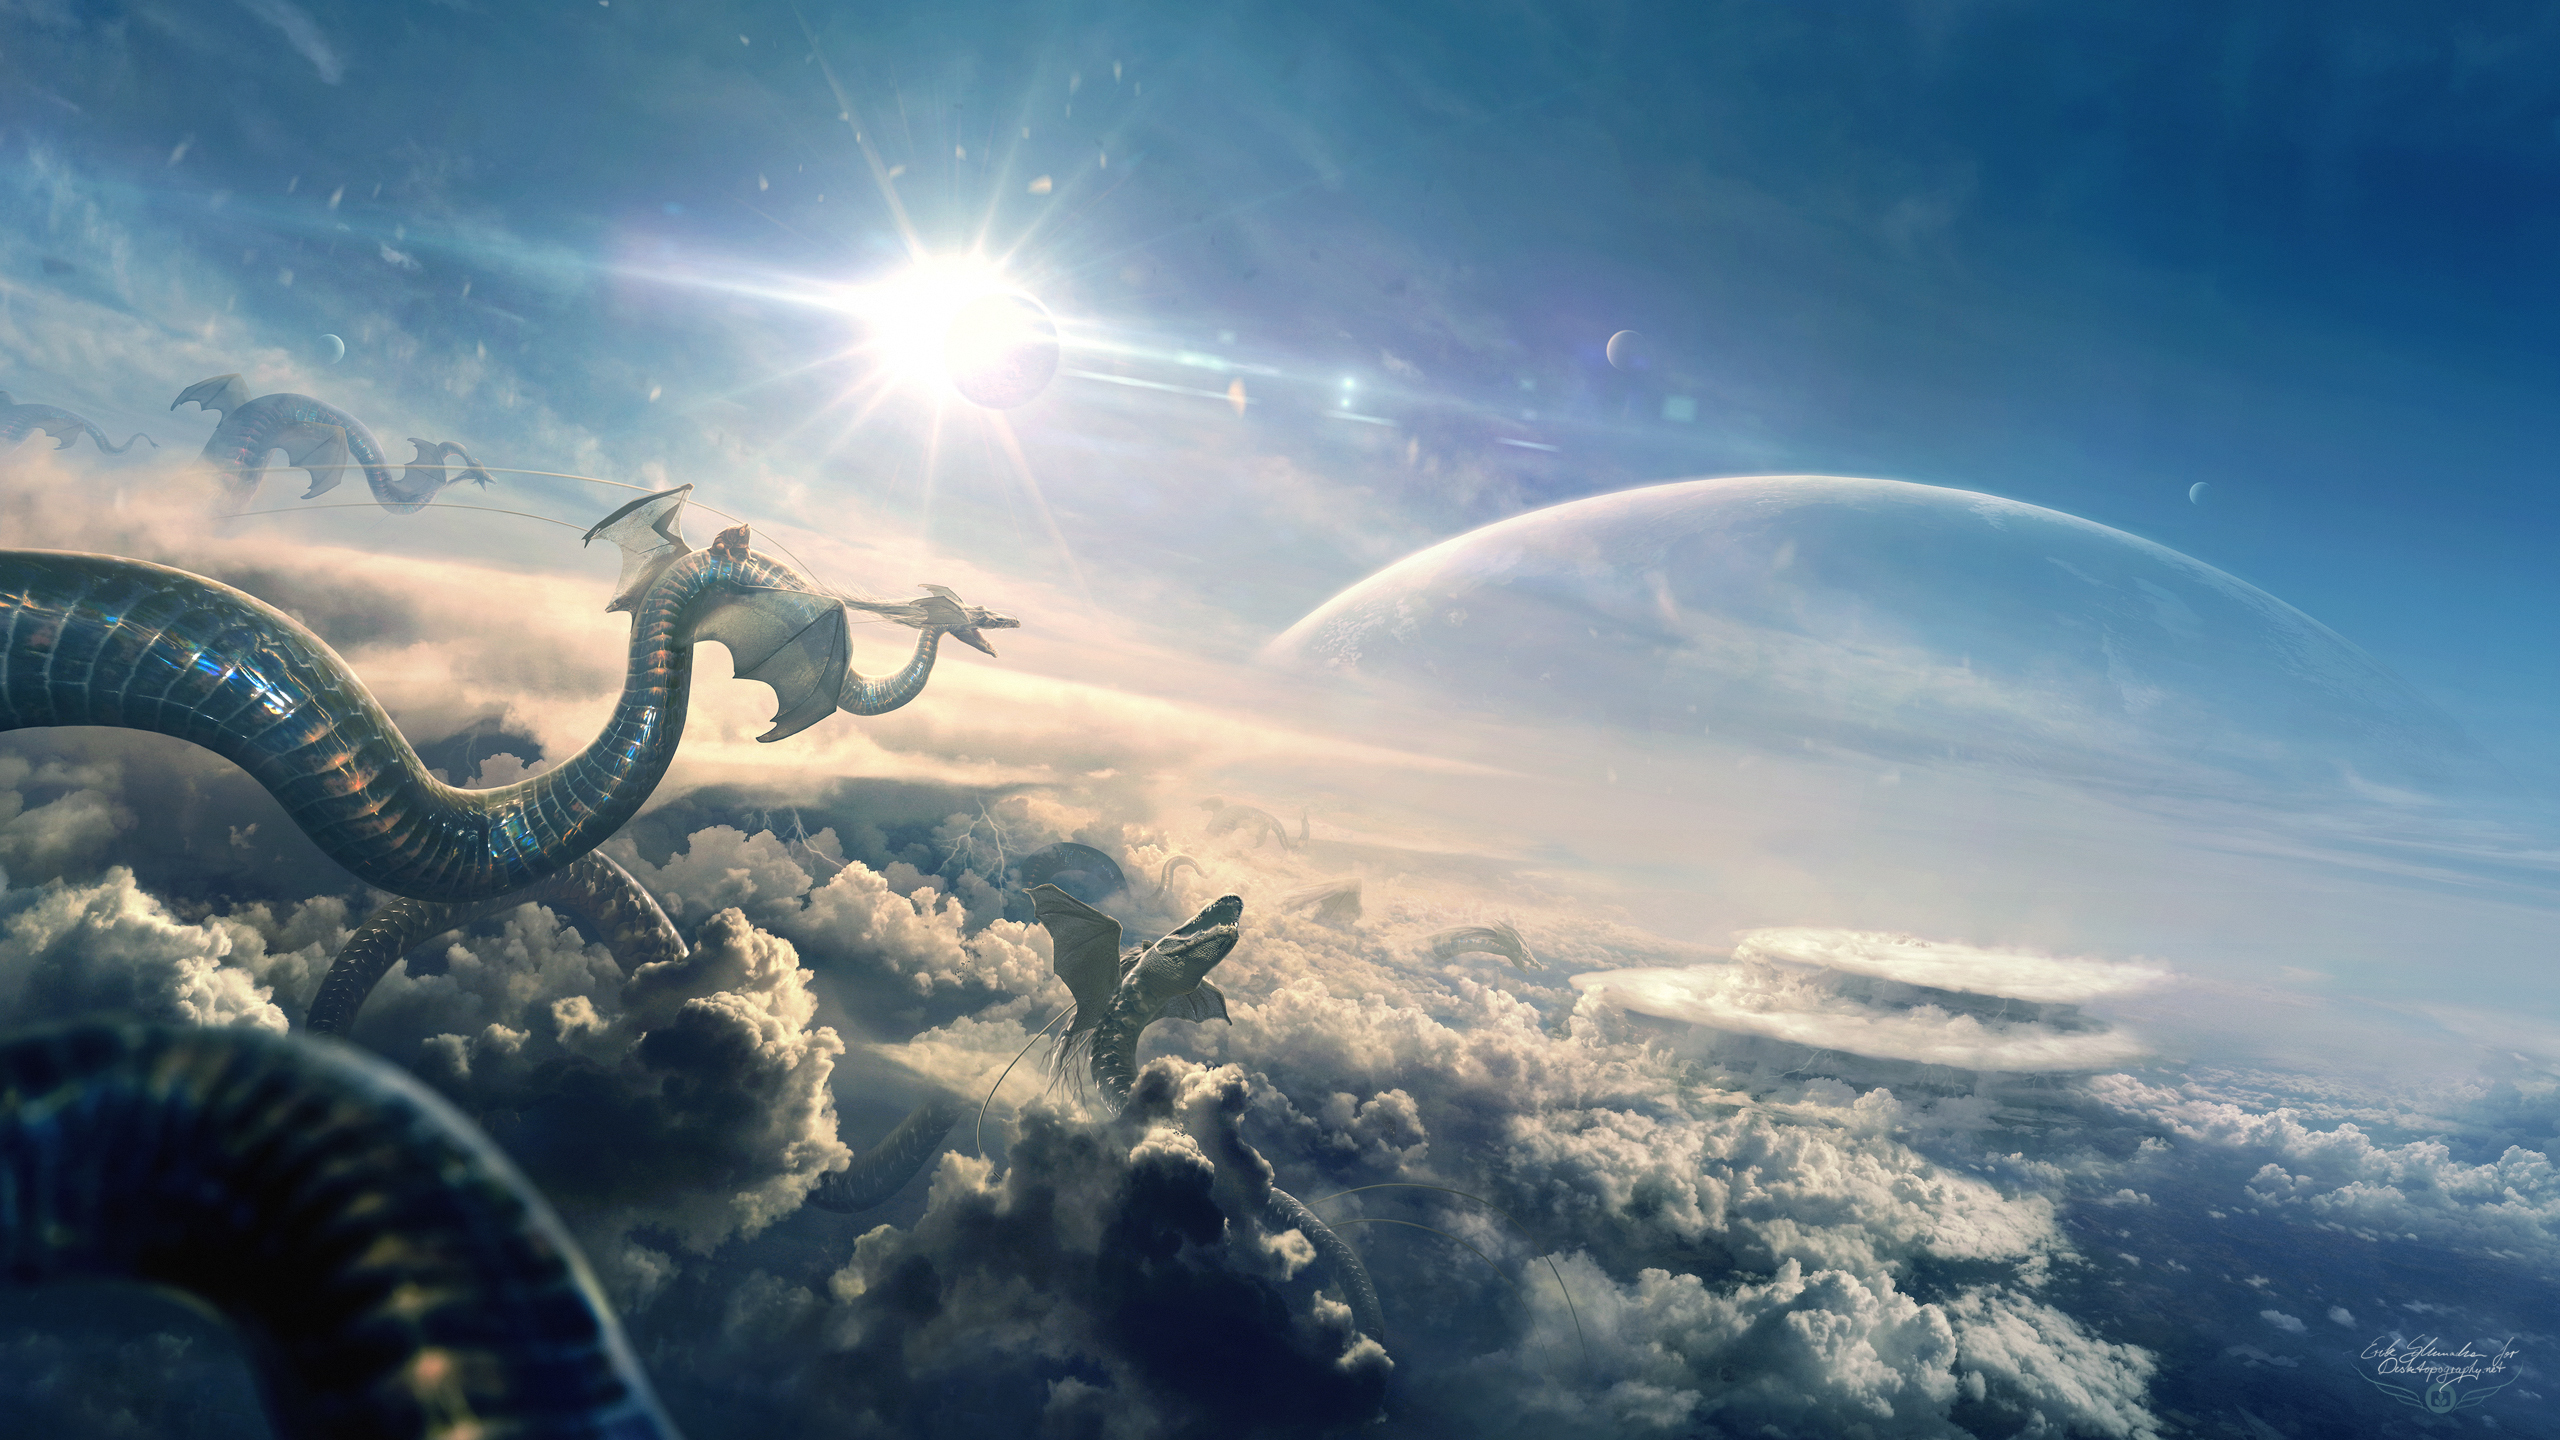 Dragon Flight Eclipse Hd Artist 4k Wallpapers Images Backgrounds Photos And Pictures